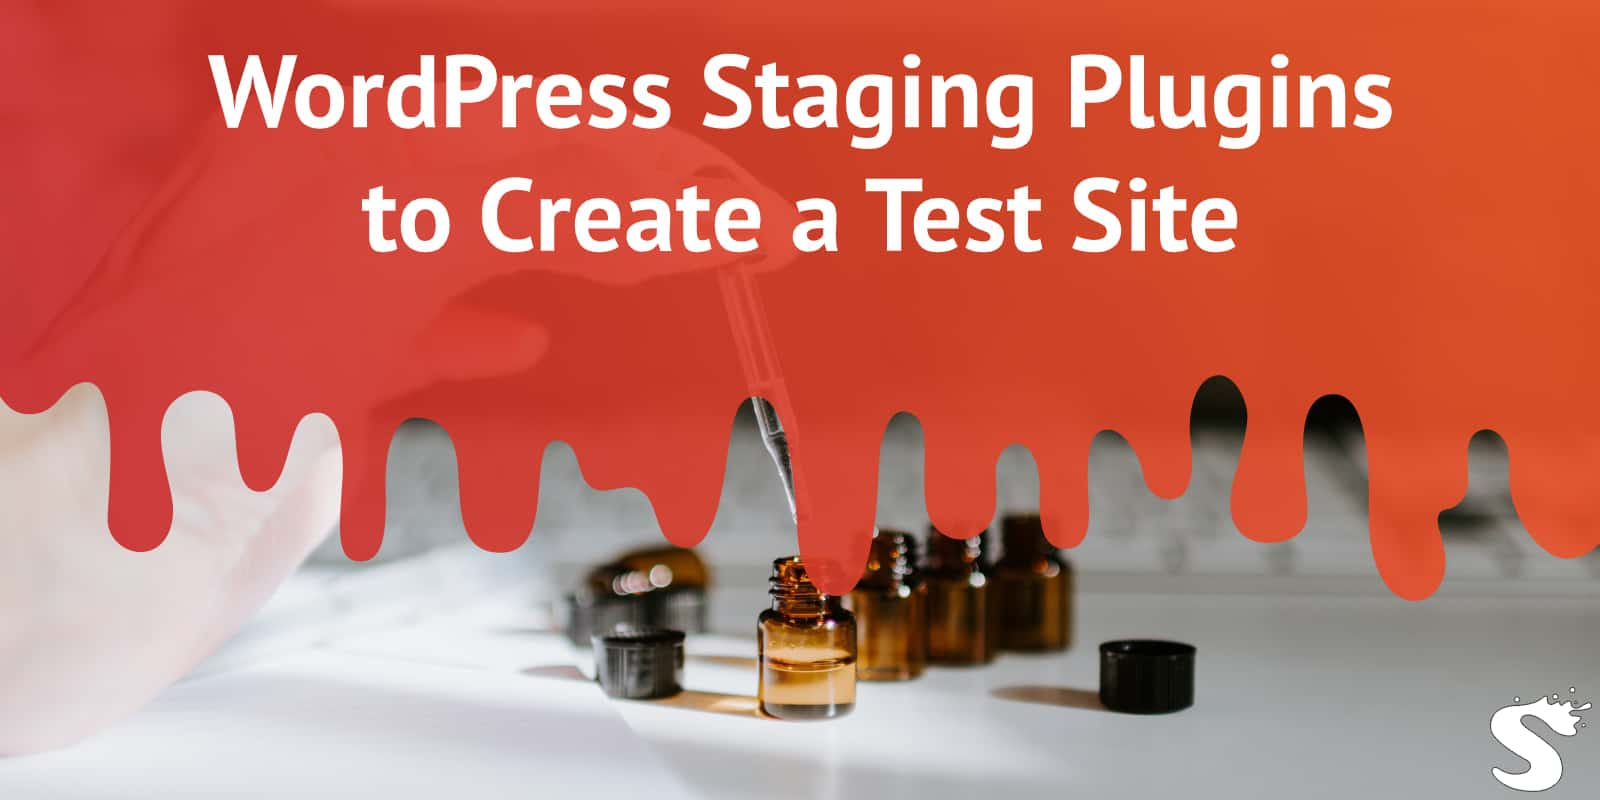 5 Best WordPress Staging Plugins to Create a Test Site